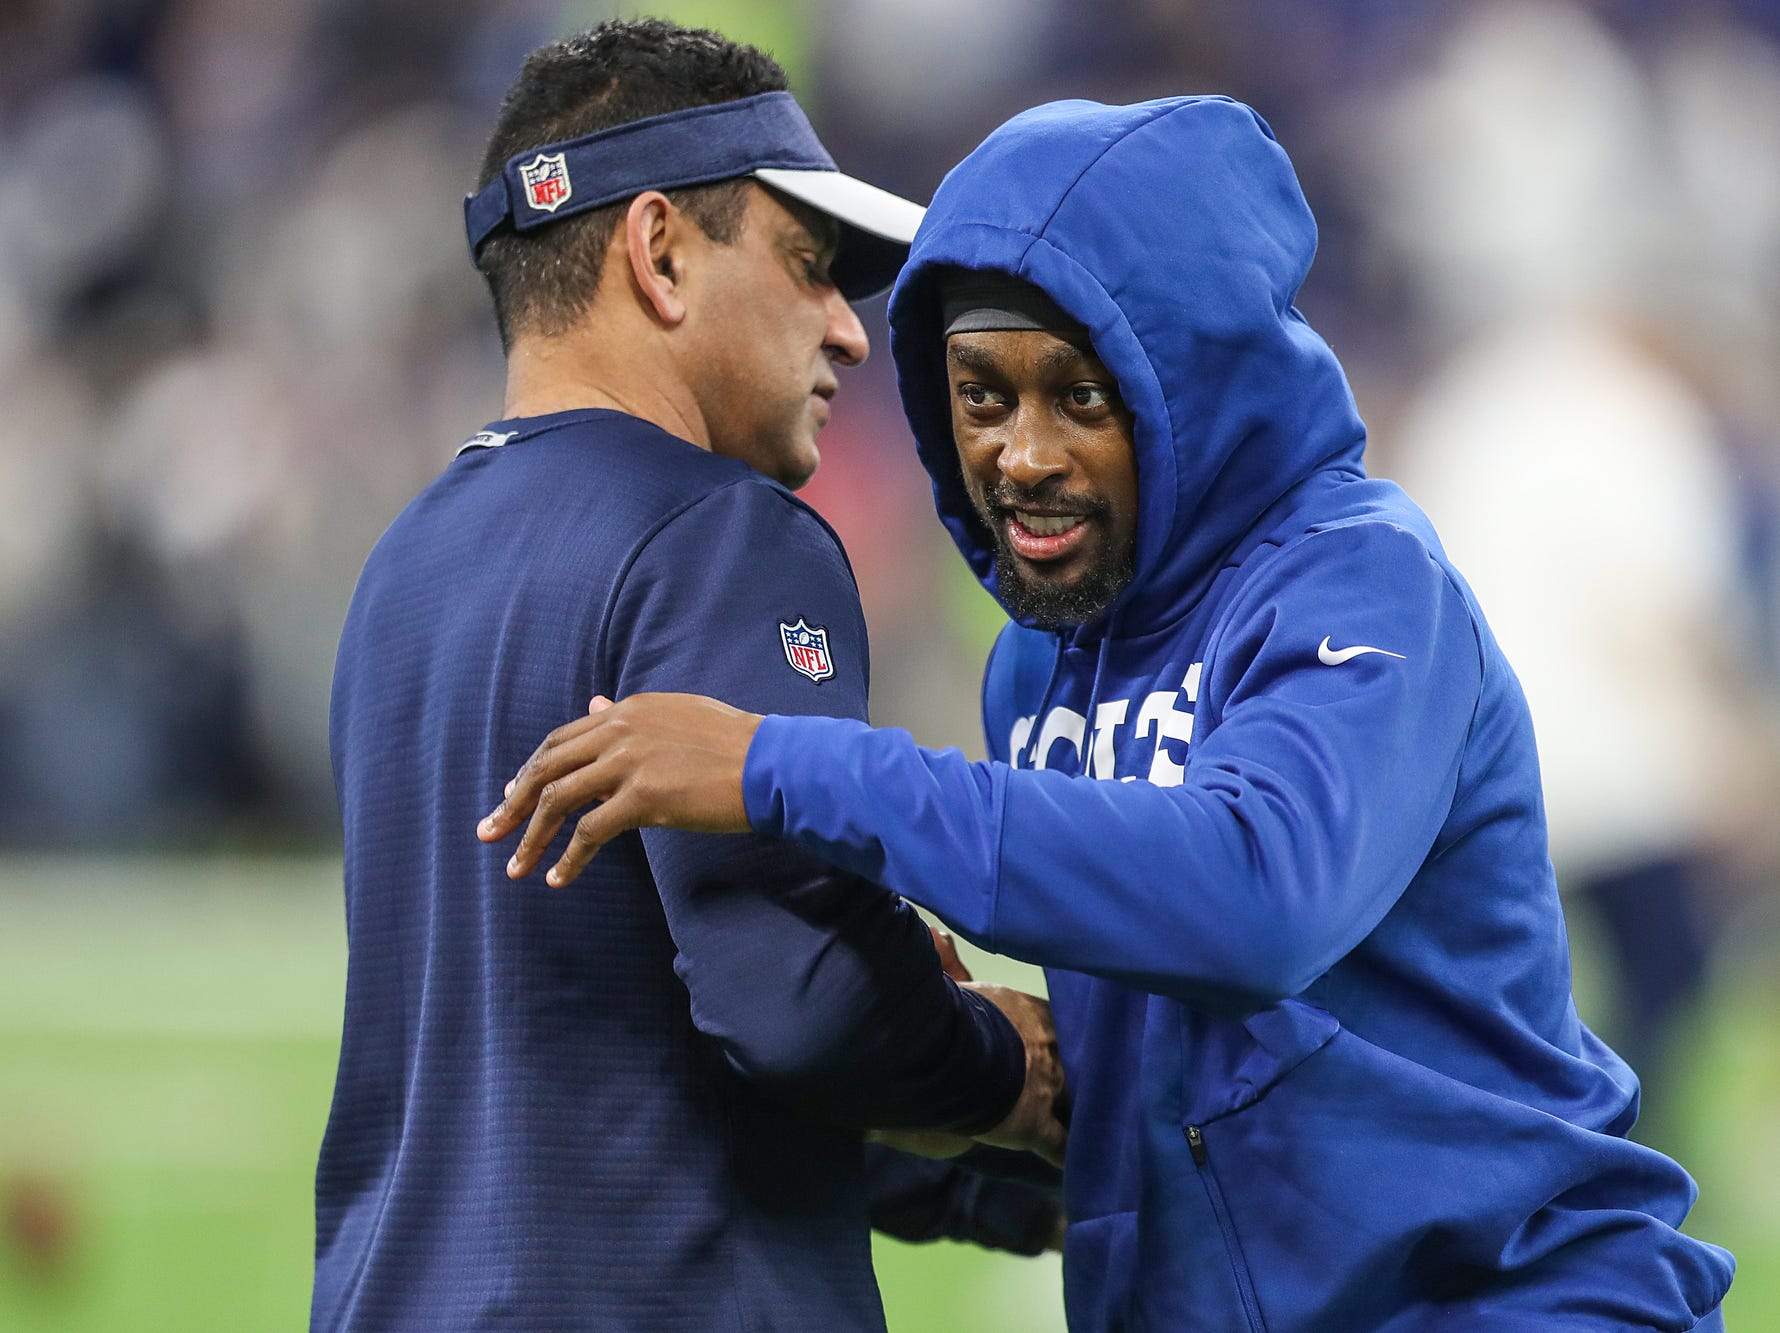 Indianapolis Colts wide receiver T.Y. Hilton (13) talks with a Dallas coach before the Colts faced the Dallas Cowboys in week 15 at Lucas Oil Stadium in Indianapolis, Sunday, Dec. 16, 2018.